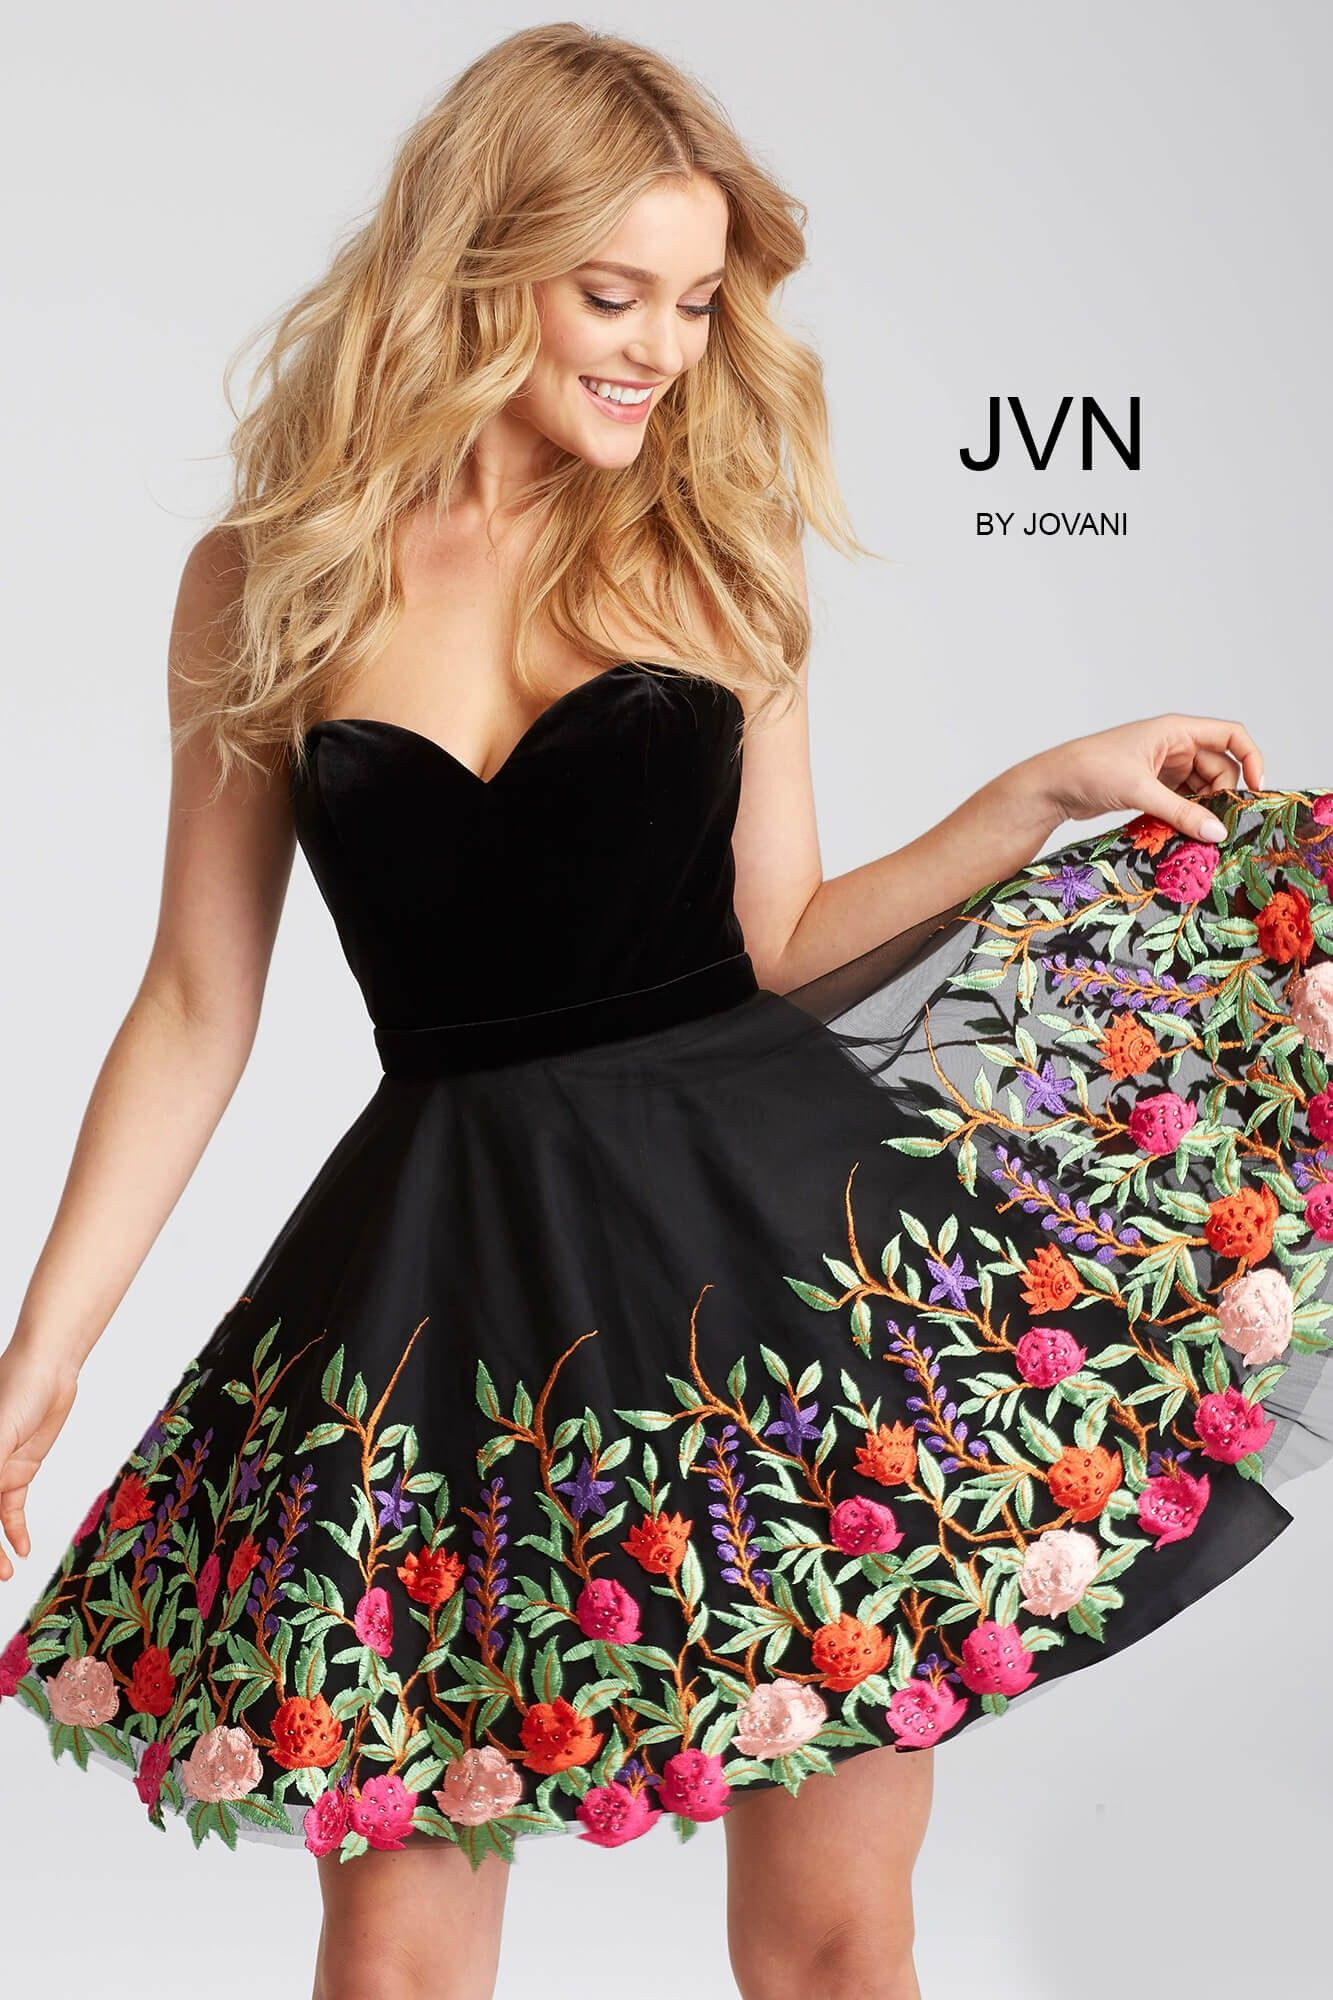 Jvn54508 By Jovani Is A Perfect Mixture Of Contemporary Colorful And Sophisticated The Timeless Stra Short Dresses Strapless Dresses Short Black Short Dress [ 2000 x 1333 Pixel ]